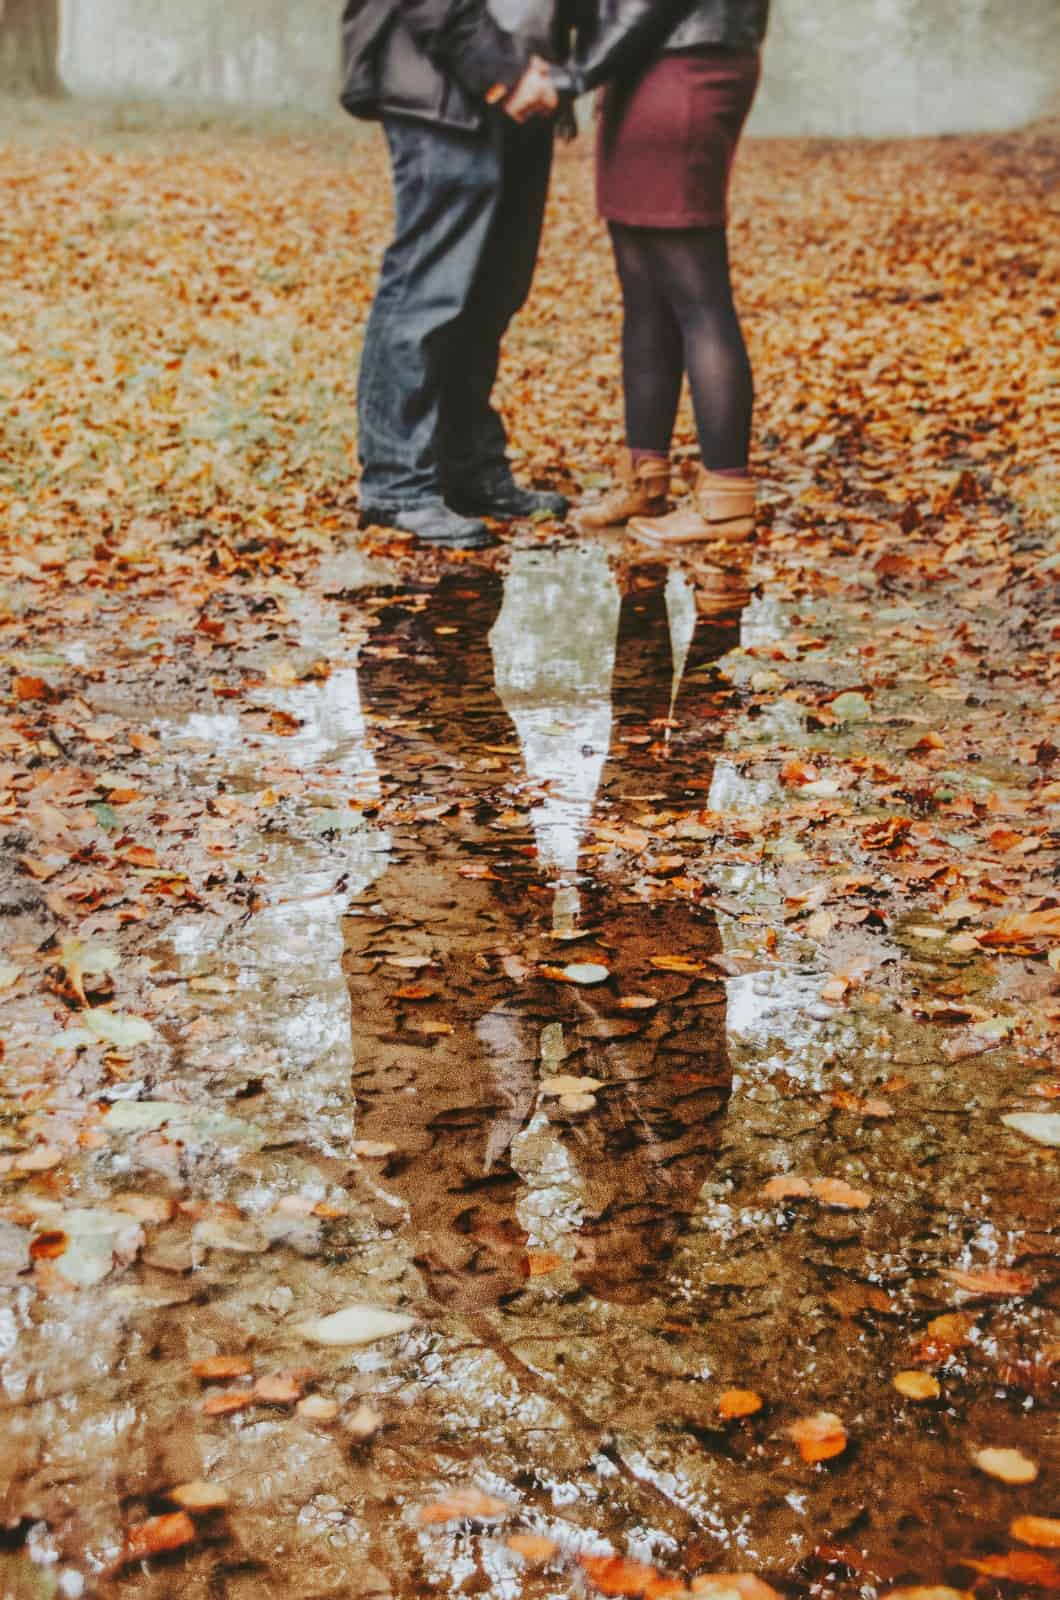 Reflection of couple in woods holding hands in wentwood forest